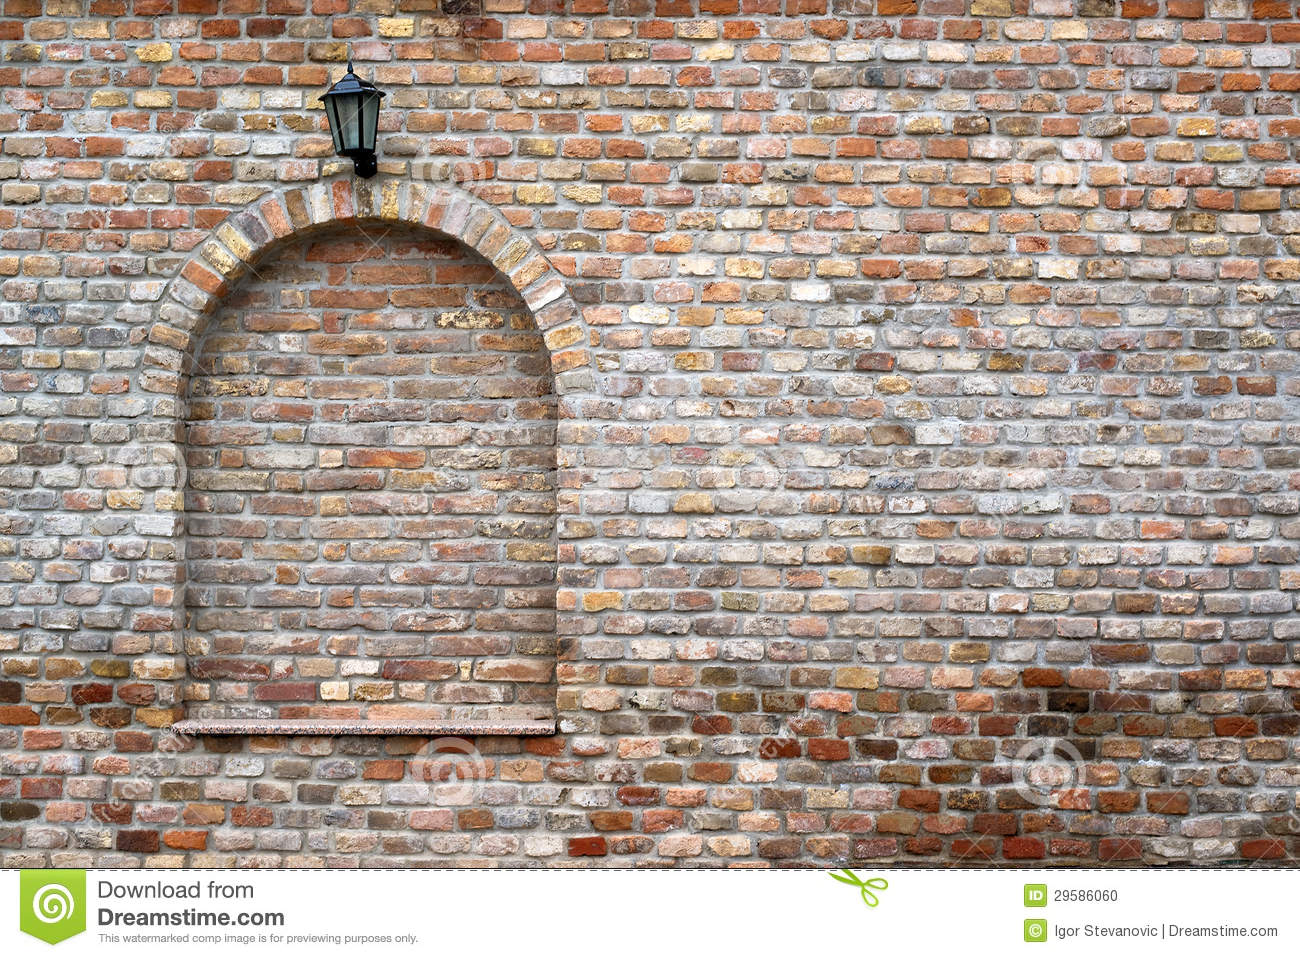 More similar stock images of ` brick wall and street lantern `